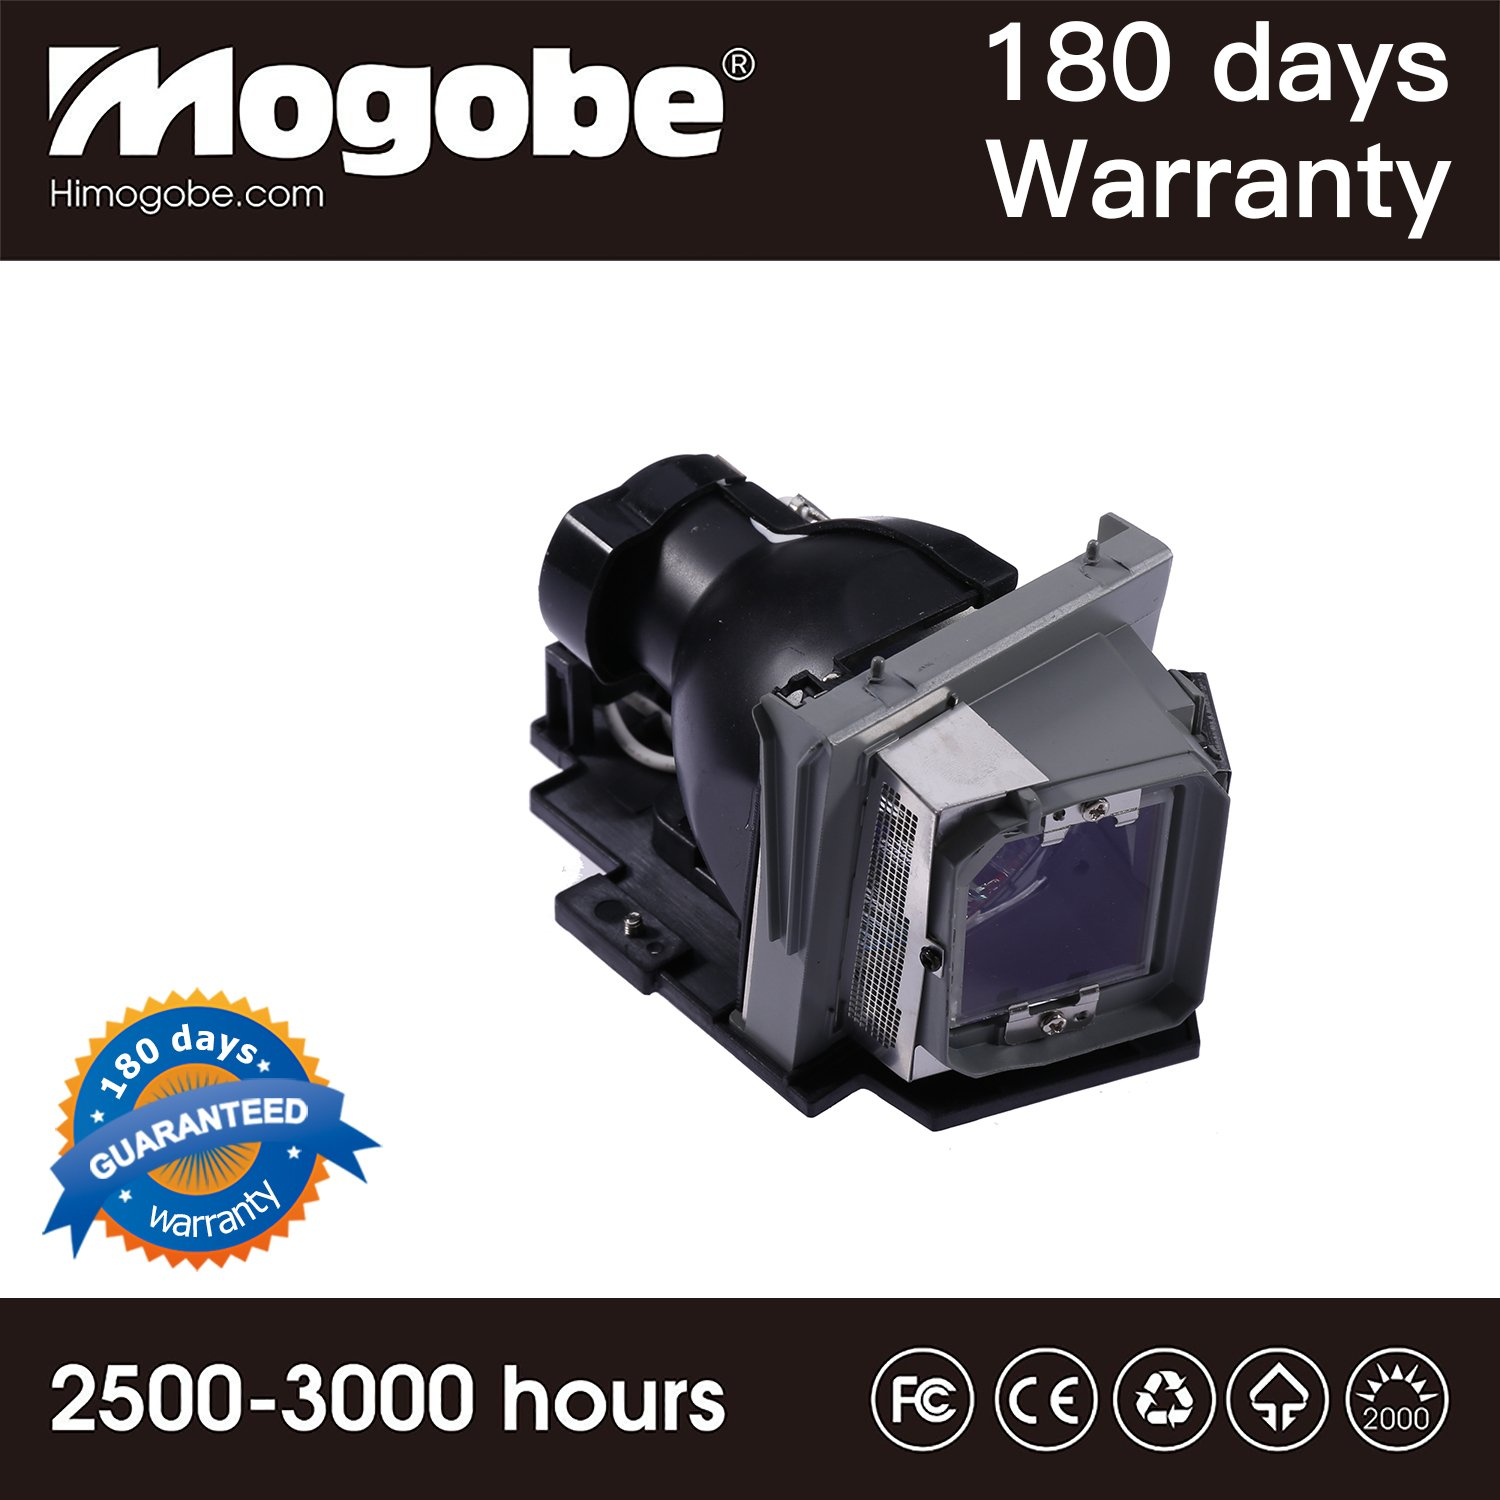 For 317-1135 Replacement Lamp with Housing for 4210X Dell Projectors by Mogobe